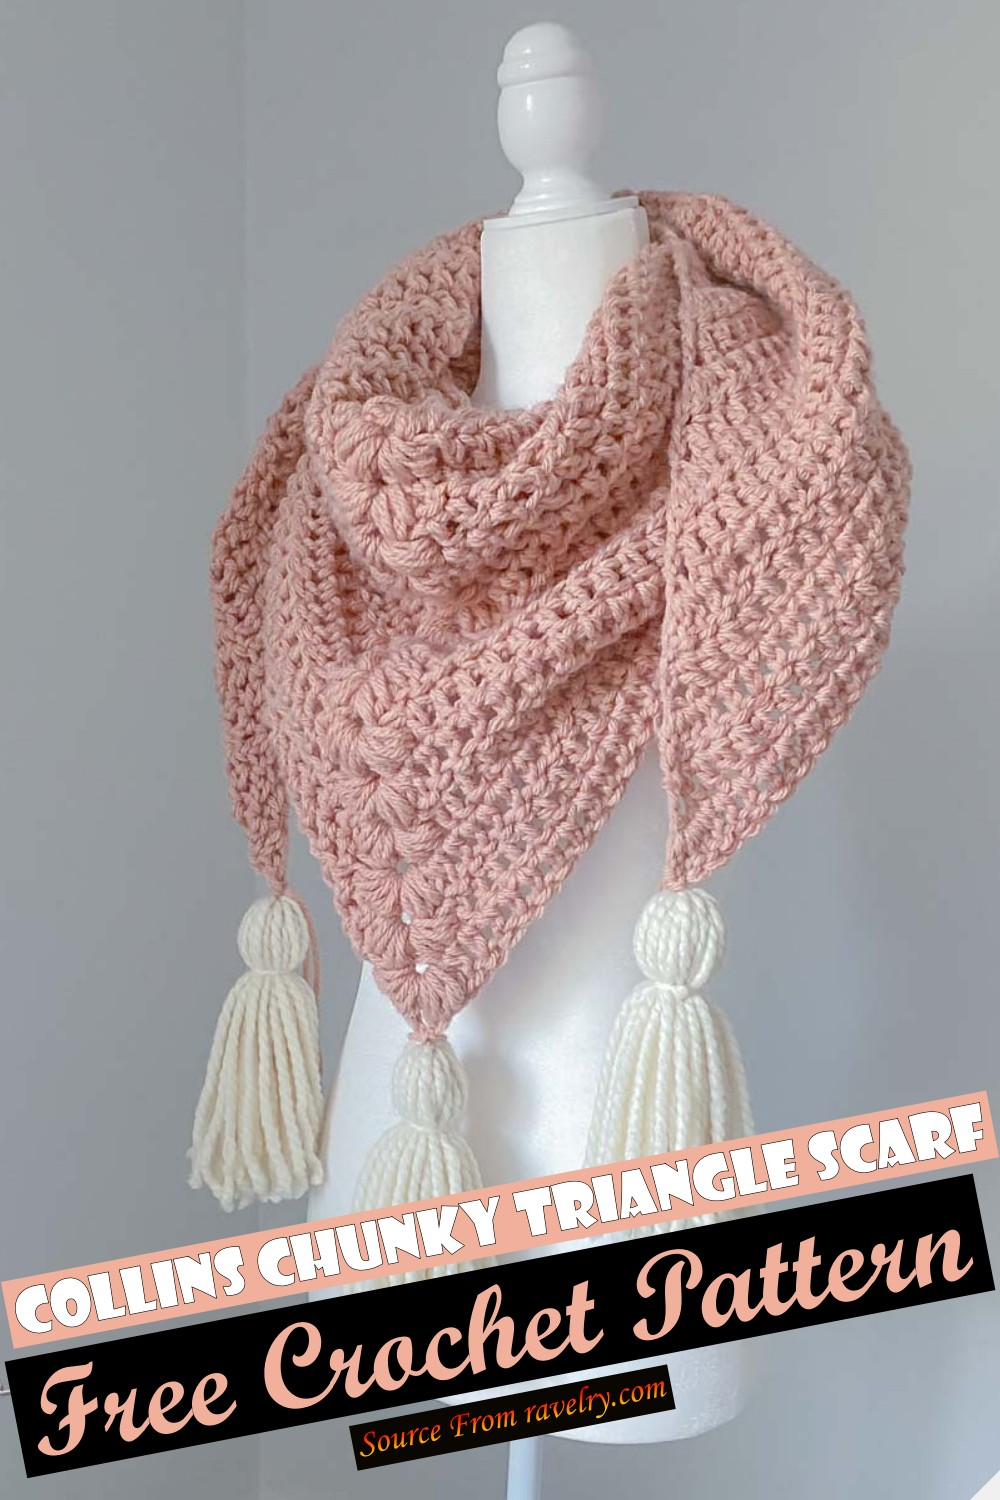 Free Crochet Collins Chunky Triangle Scarf Pattern